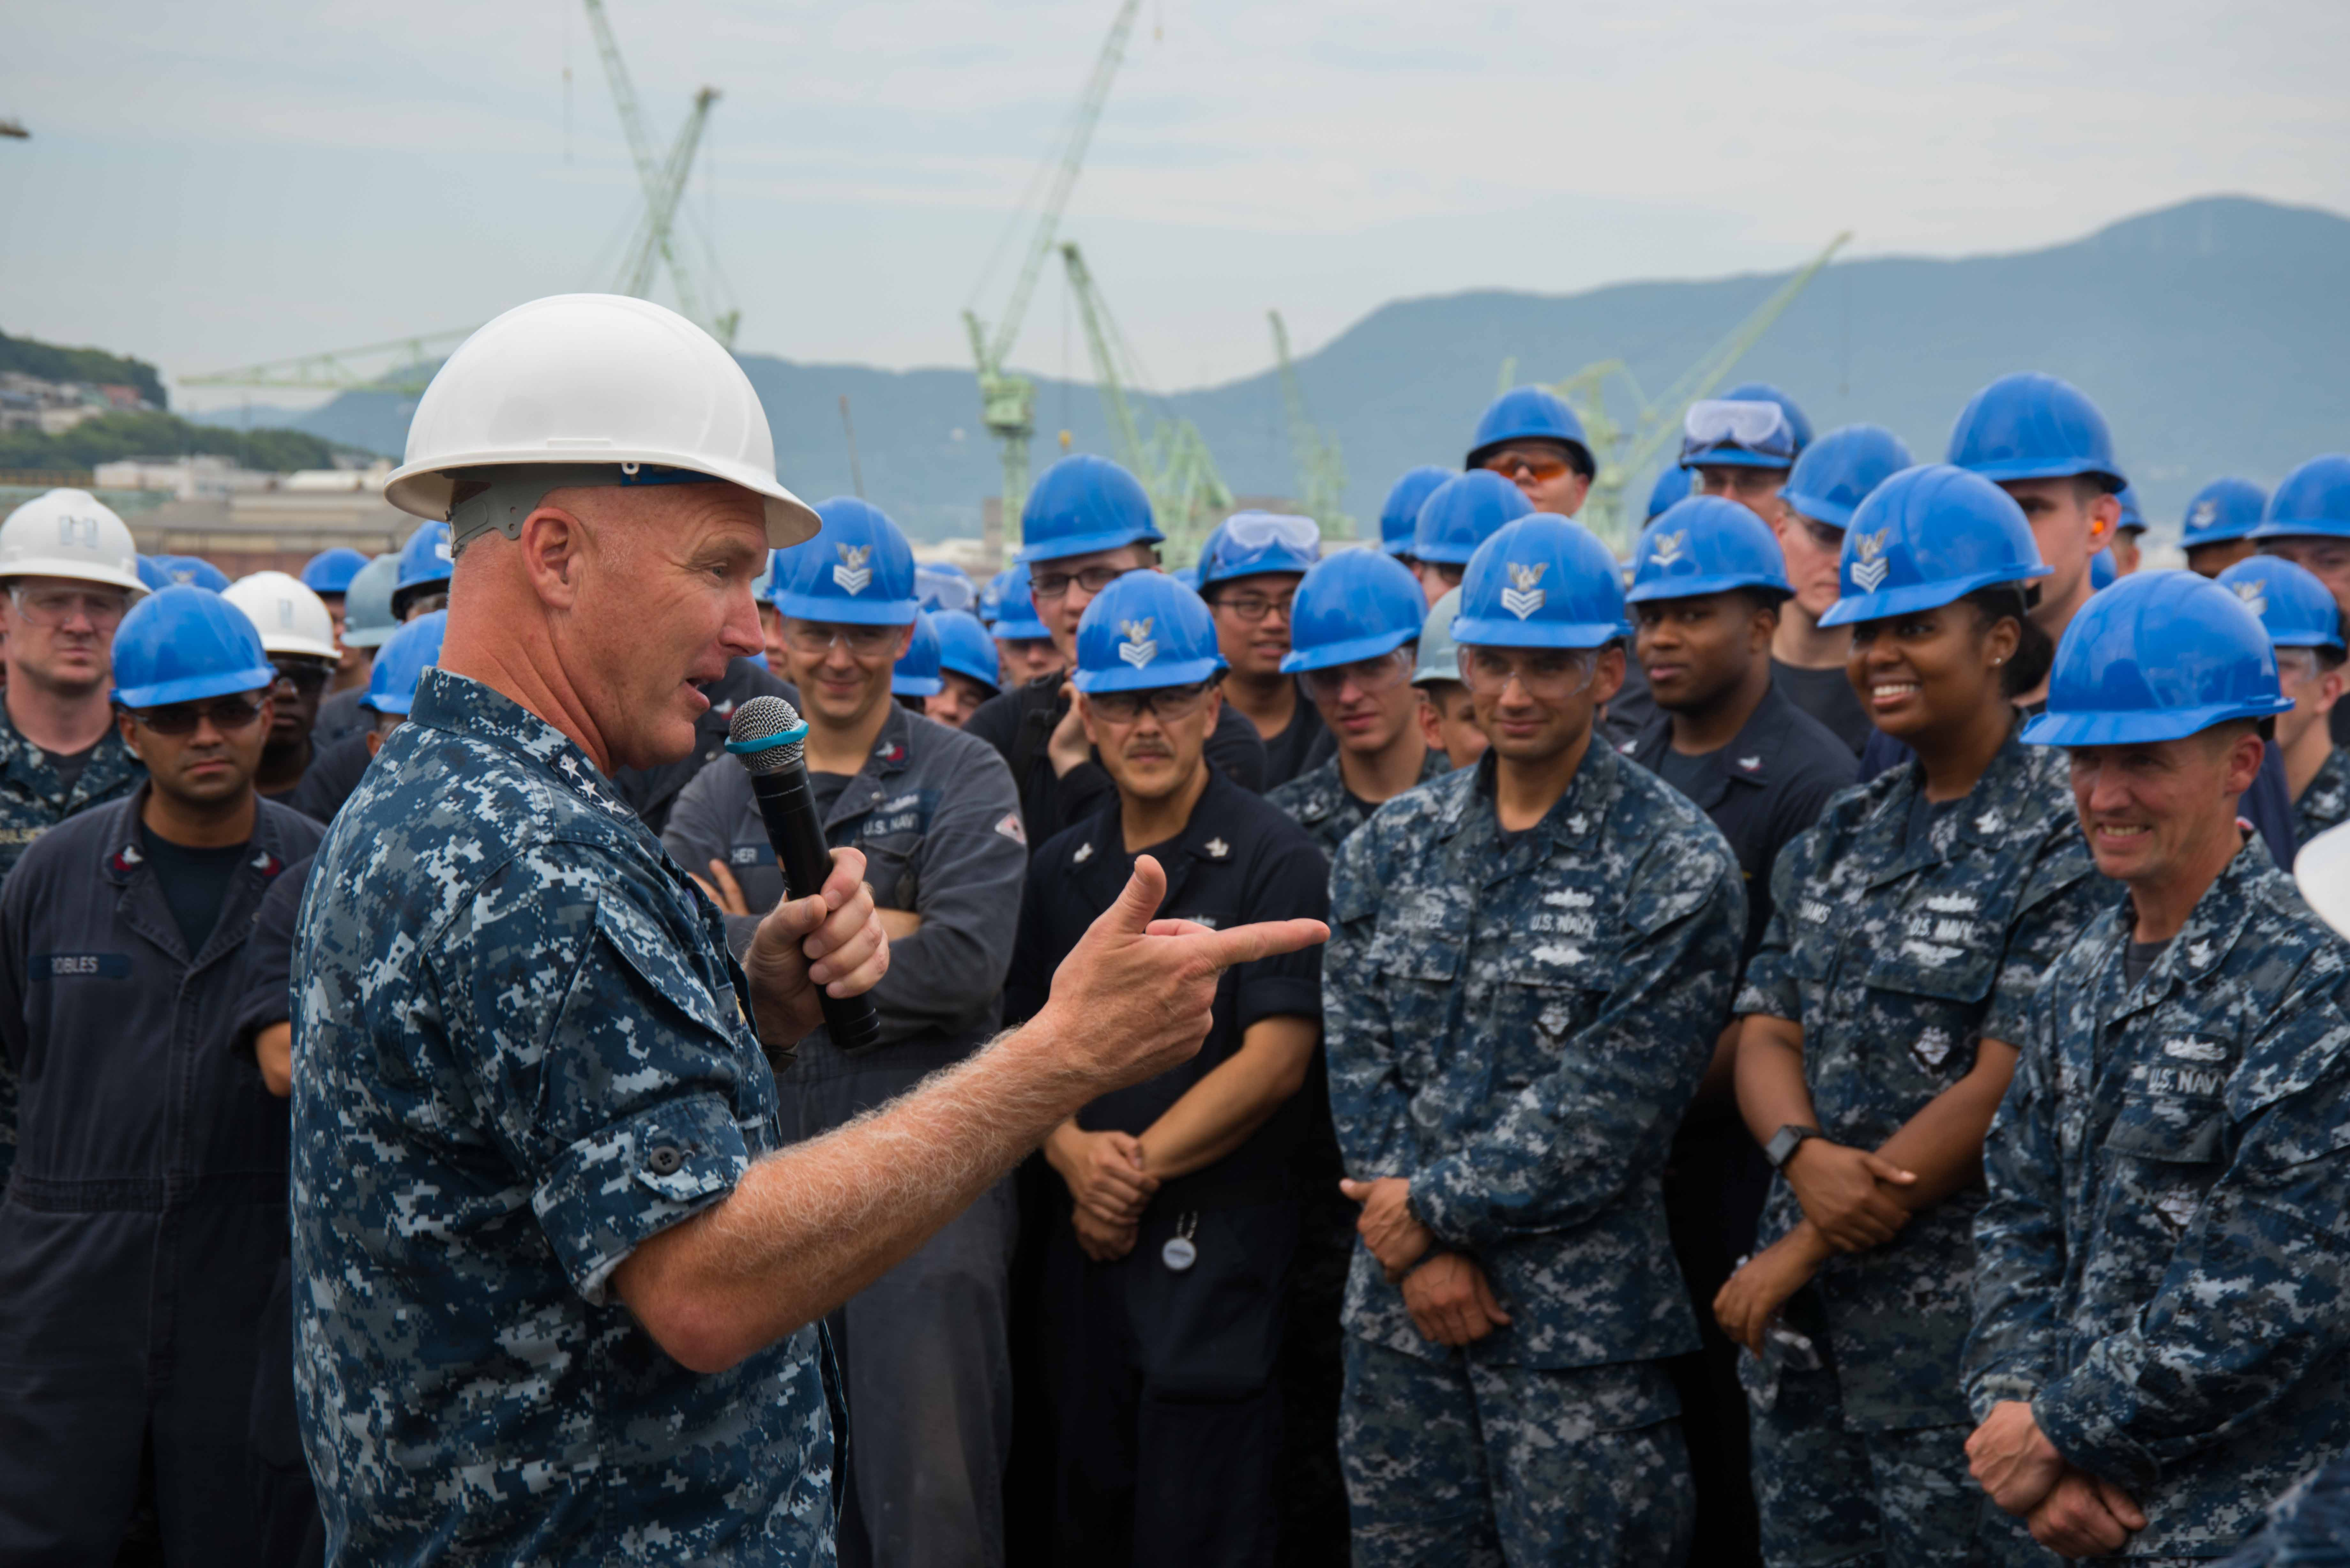 Naval Surface Force Commander Visits Sasebo Based Ships